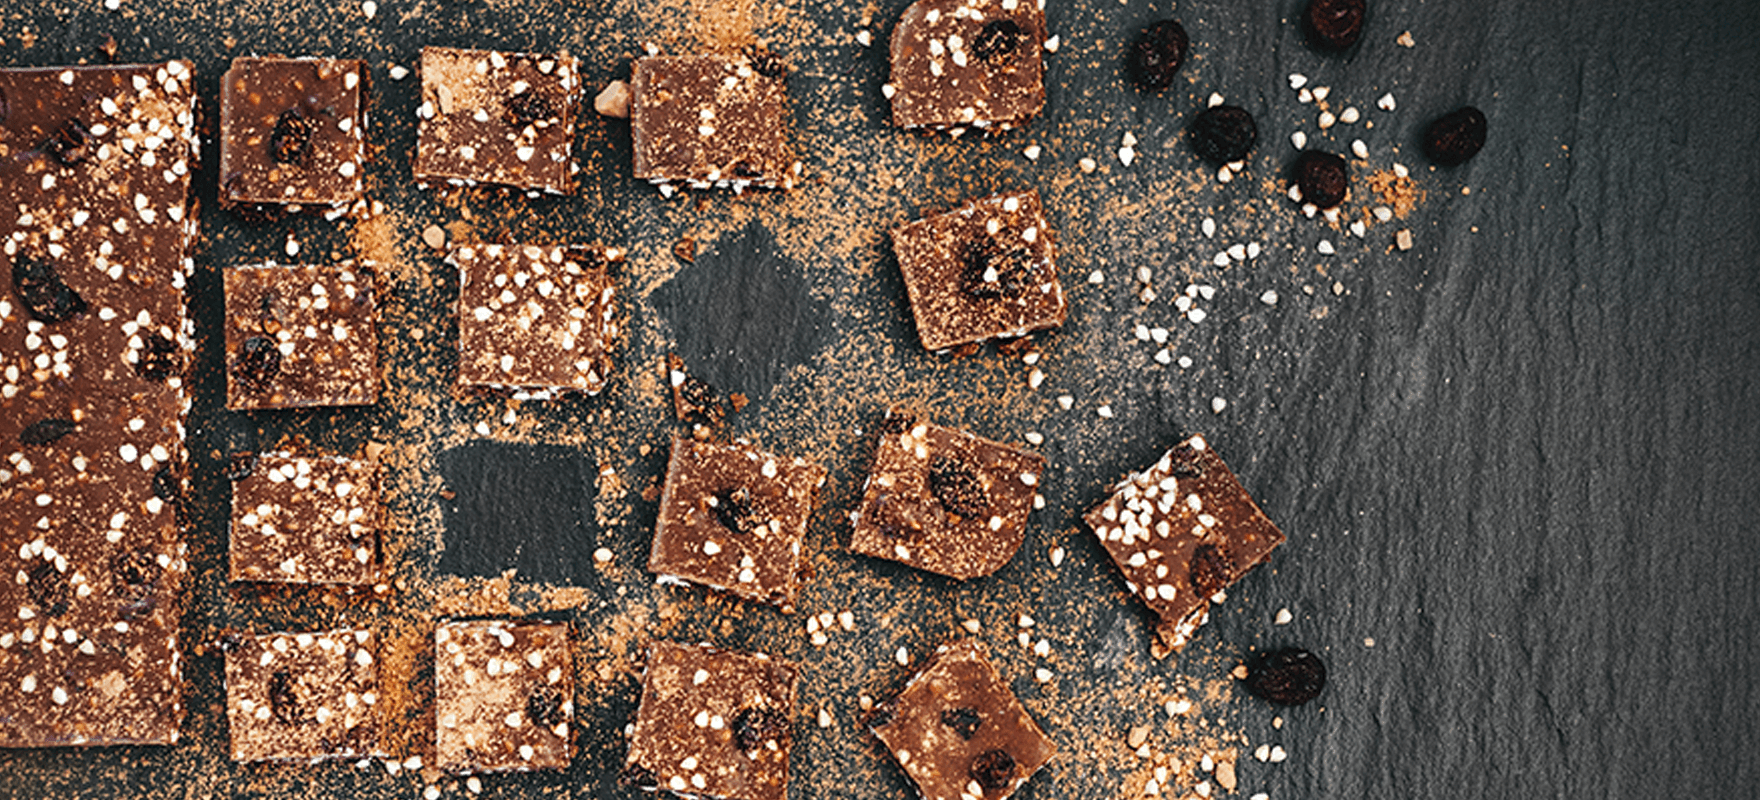 Peanut butter chocolate squares image 1